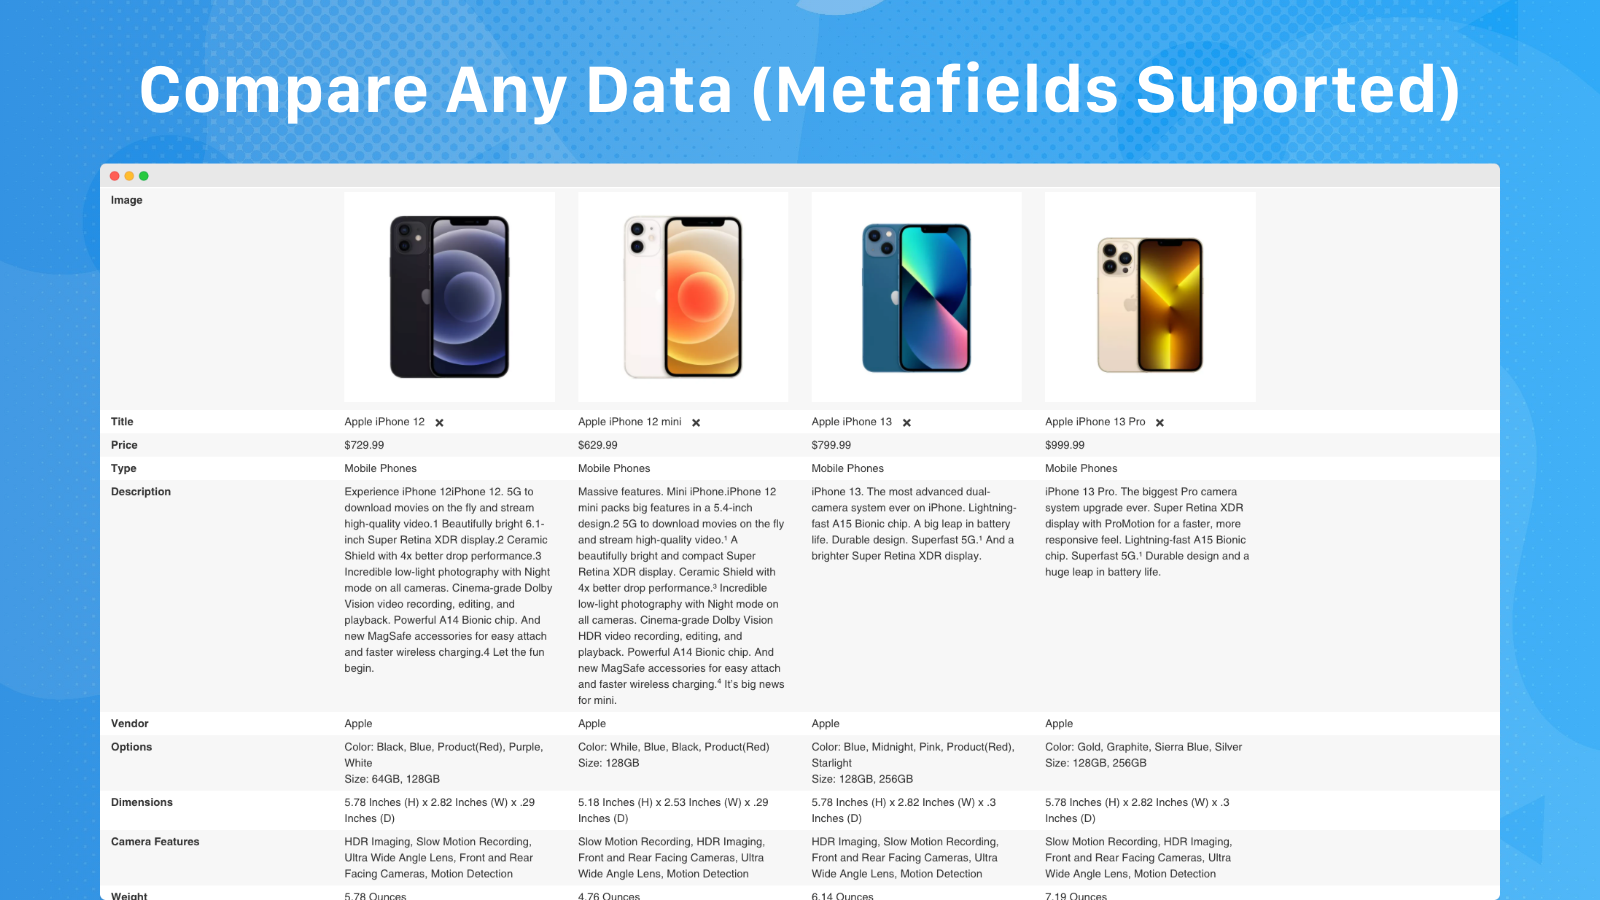 Compare Any Data (Metafields Suported)